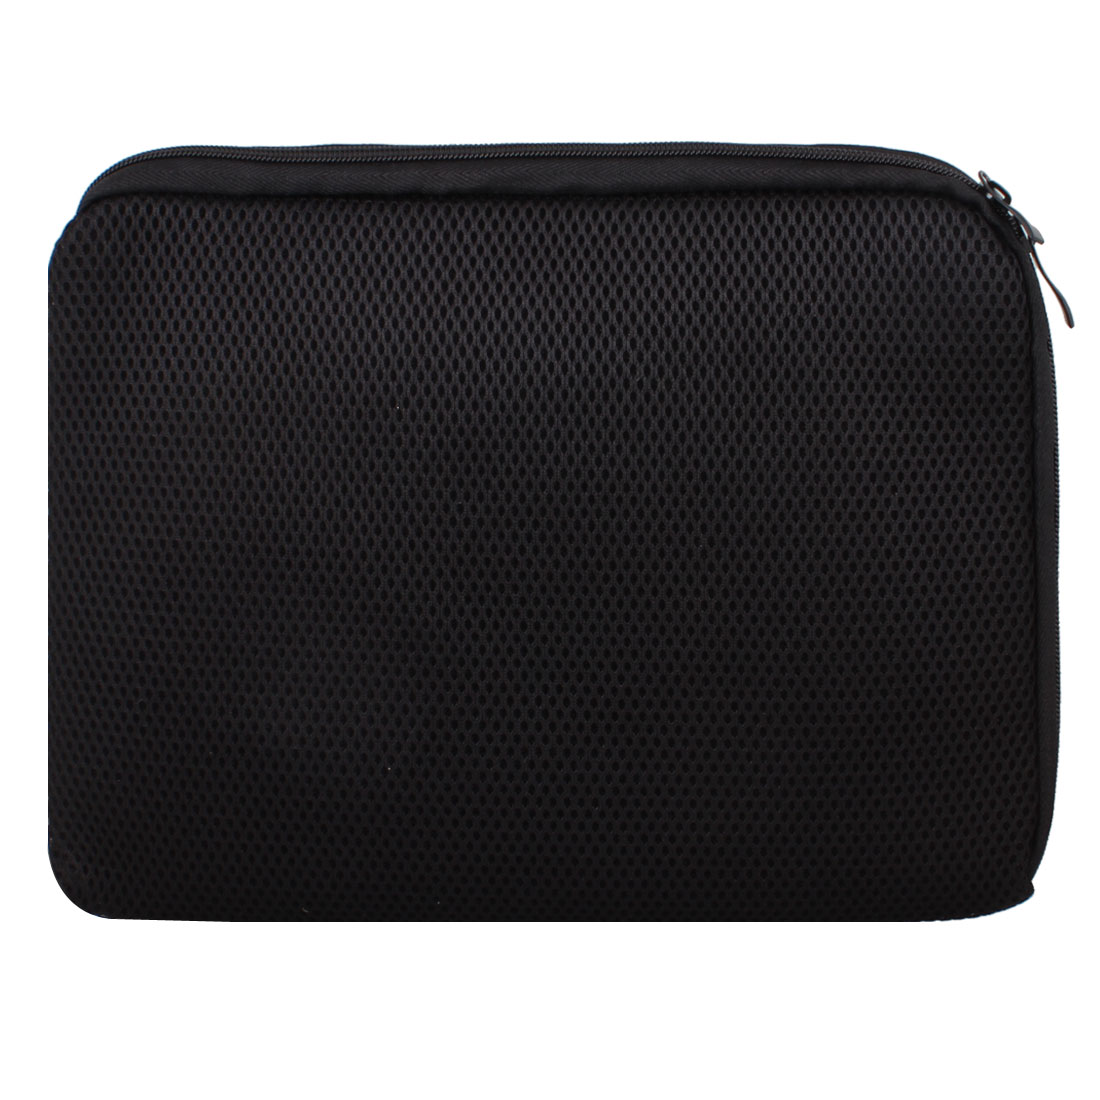 "11.6"" 12"" 12.1"" 12.4"" Laptop Mesh Sleeve Bag Carrying Case Black for HP ASUS Macbook Air Acer"